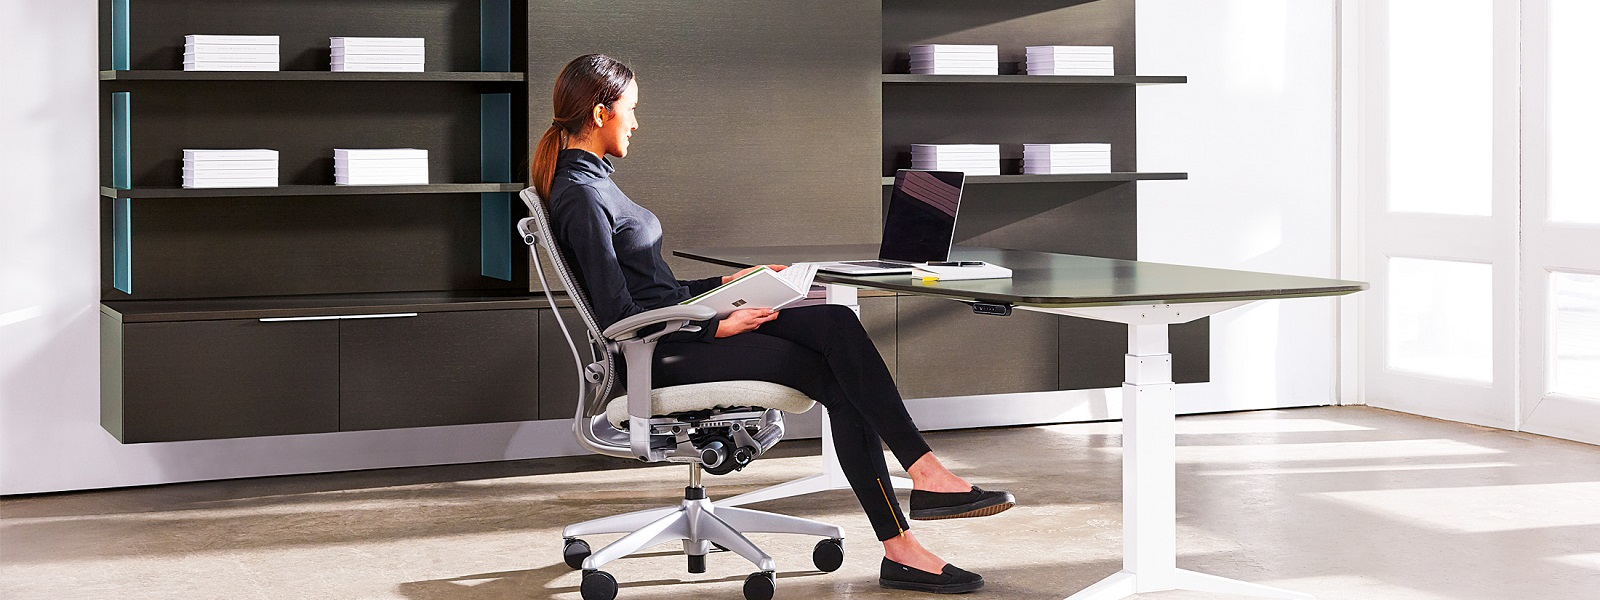 Fabulous What Distinguishes A Gaming Chair From A Regular Office Chair Creativecarmelina Interior Chair Design Creativecarmelinacom